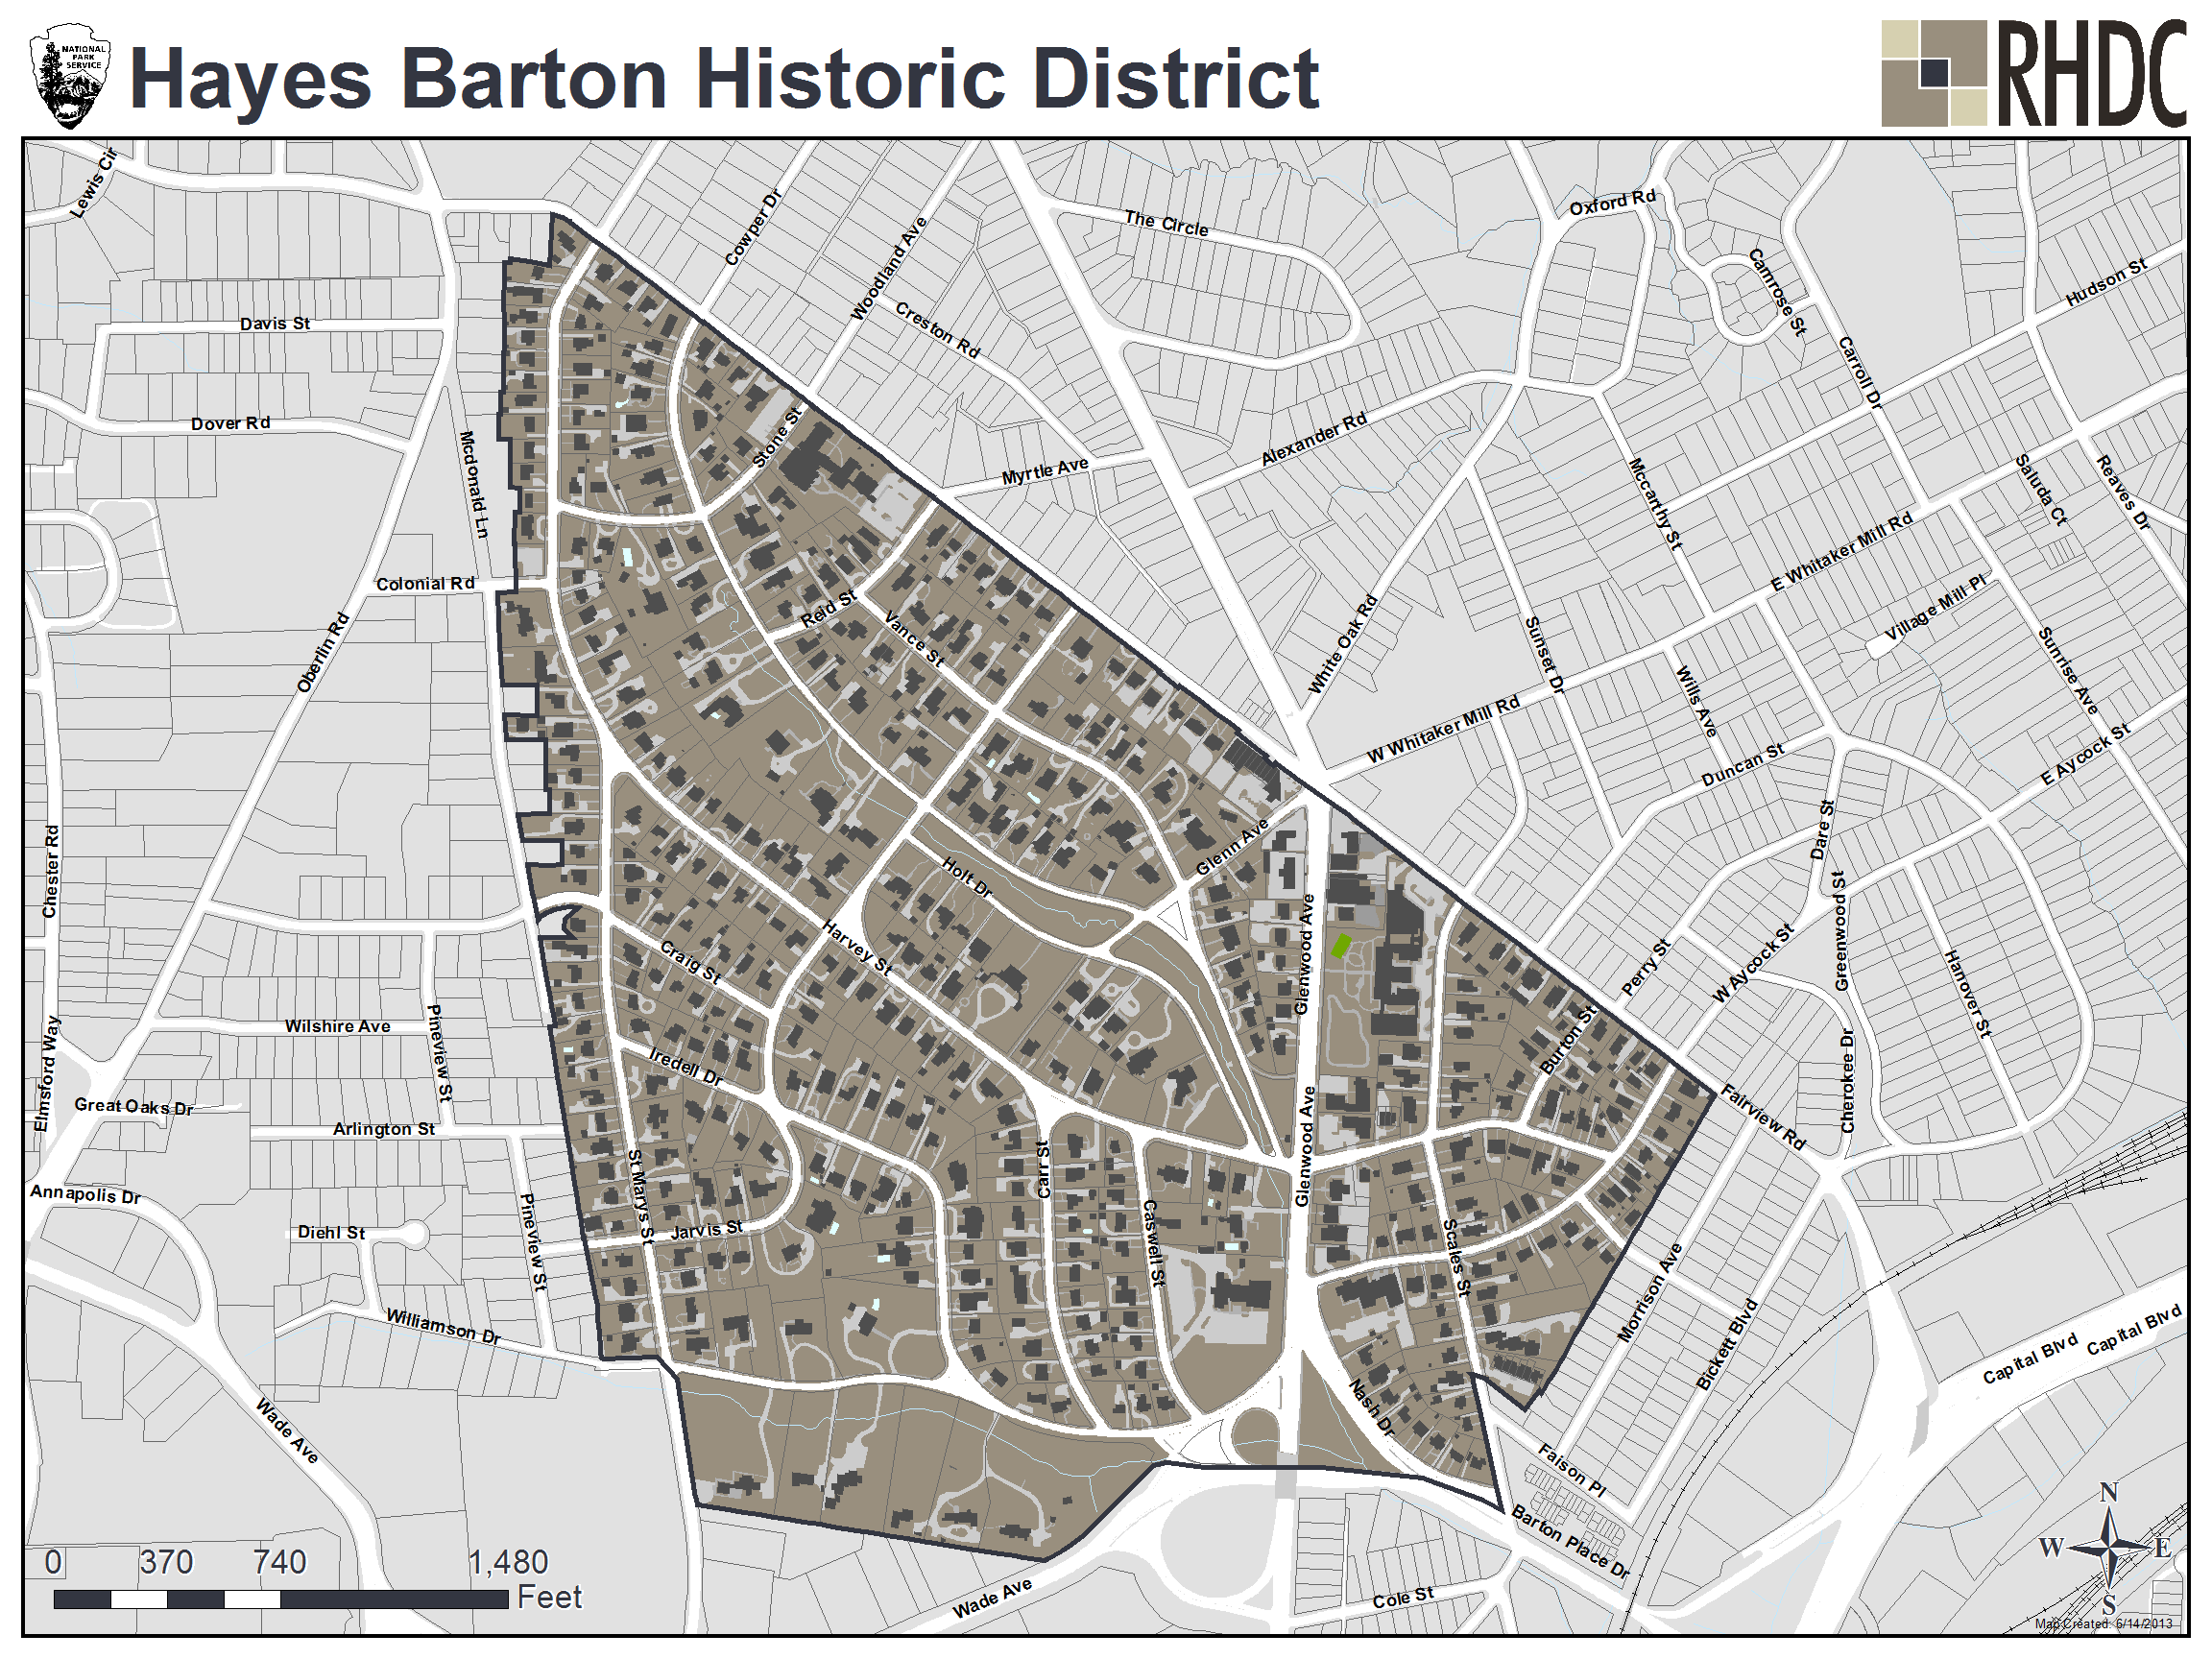 Hayes Barton Historic District map Five Points